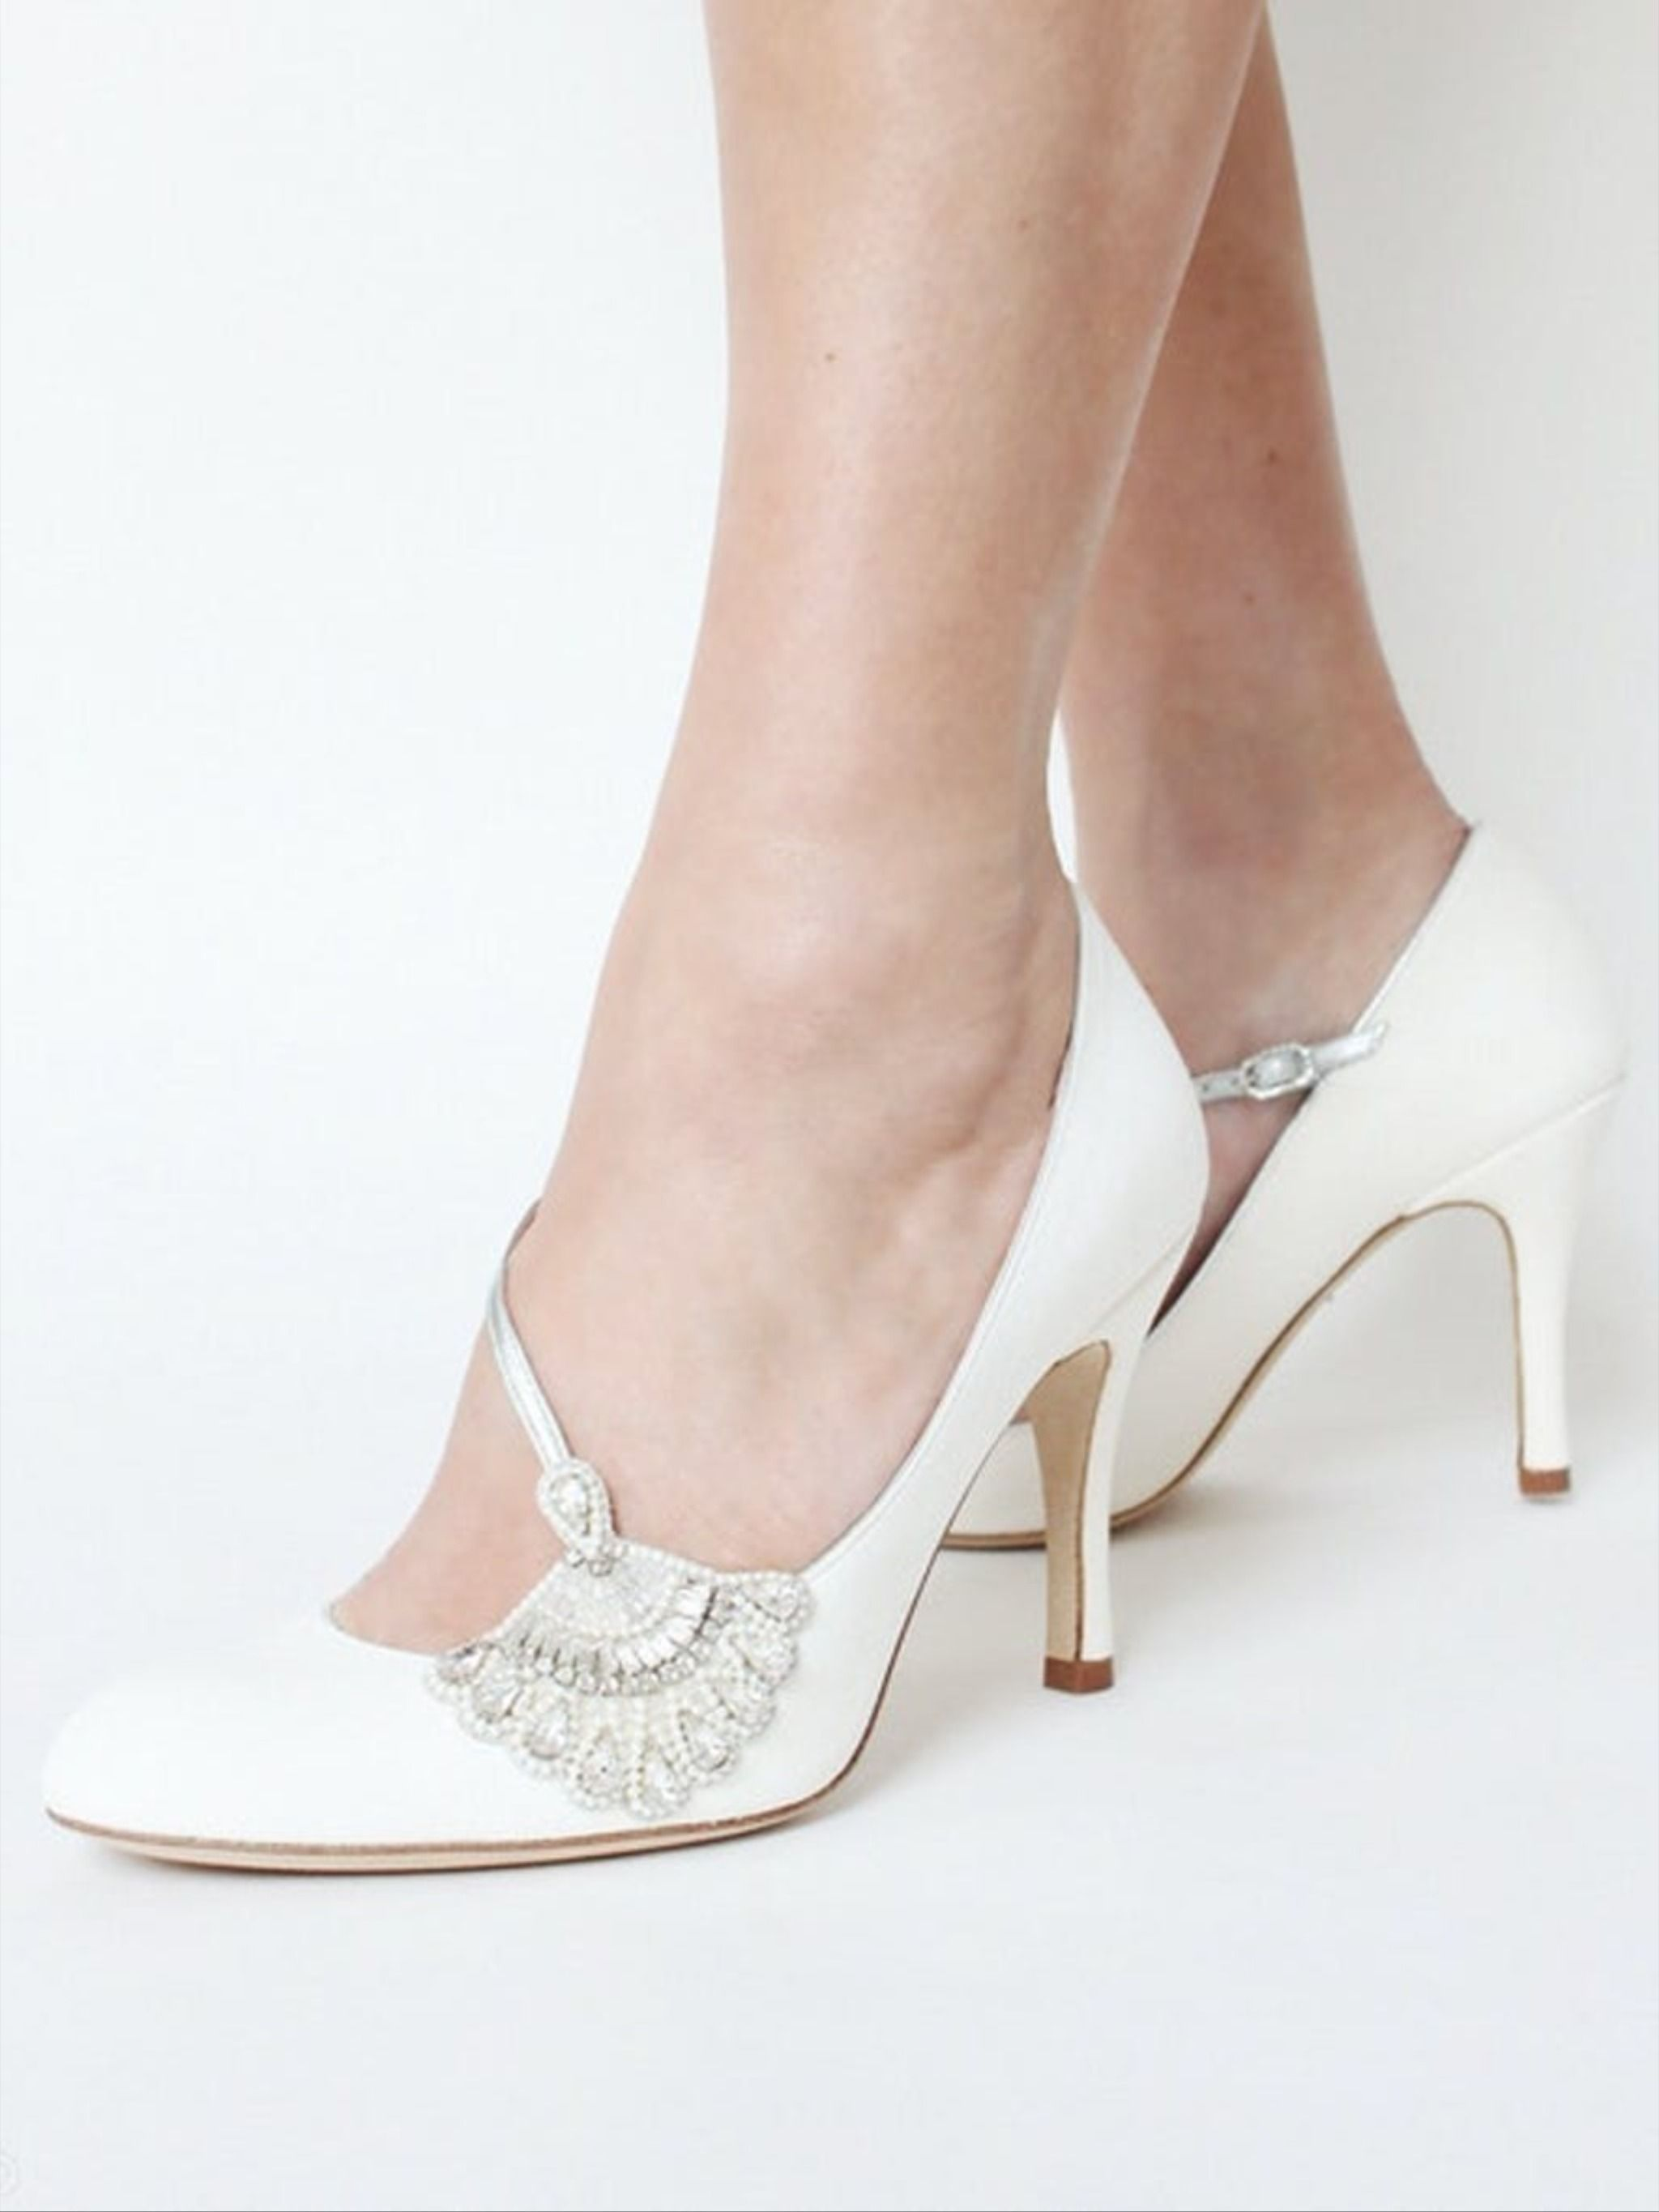 White Wedding Shoes Wedding Guest Shoes Wedding Shoes Heels White Wedding Shoes